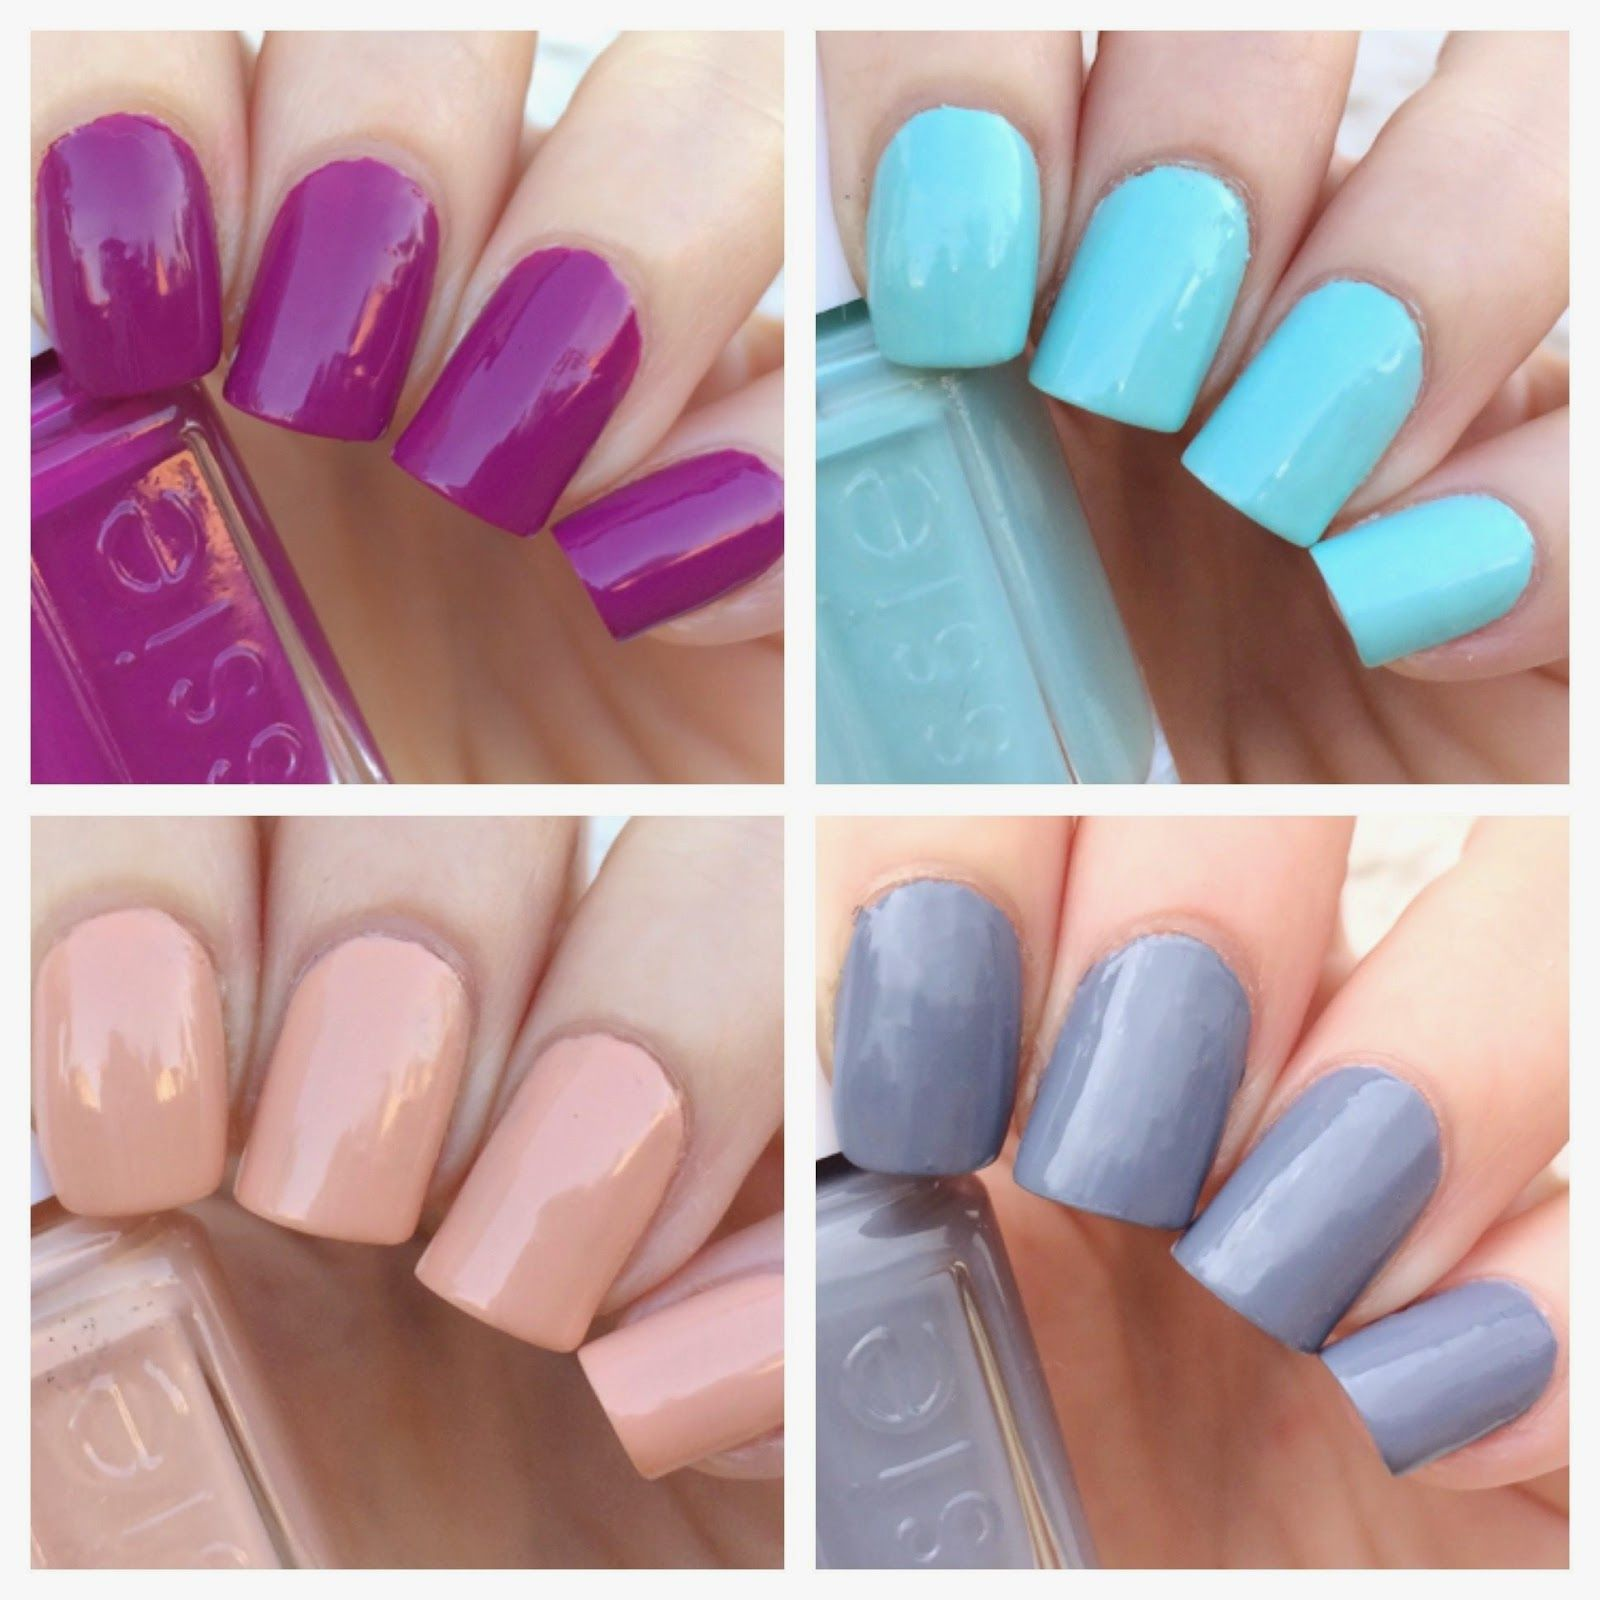 Essie Spring 2015 Mini Collection Swatches + Review